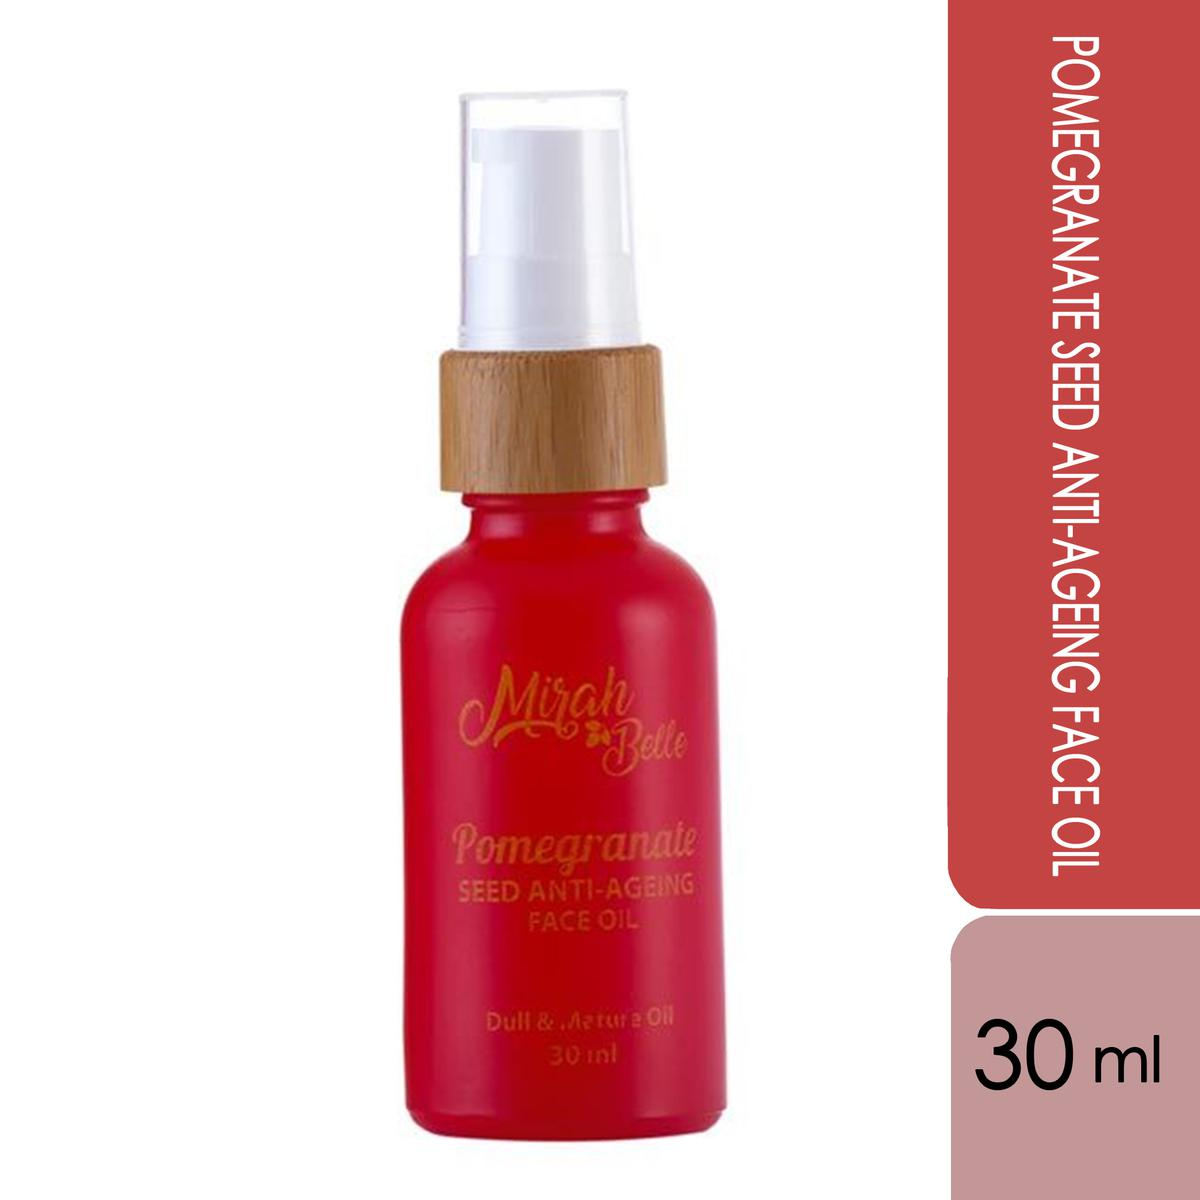 Mirah Belle Pomegranate Seed Anti - Aging Face Oil - 30Ml